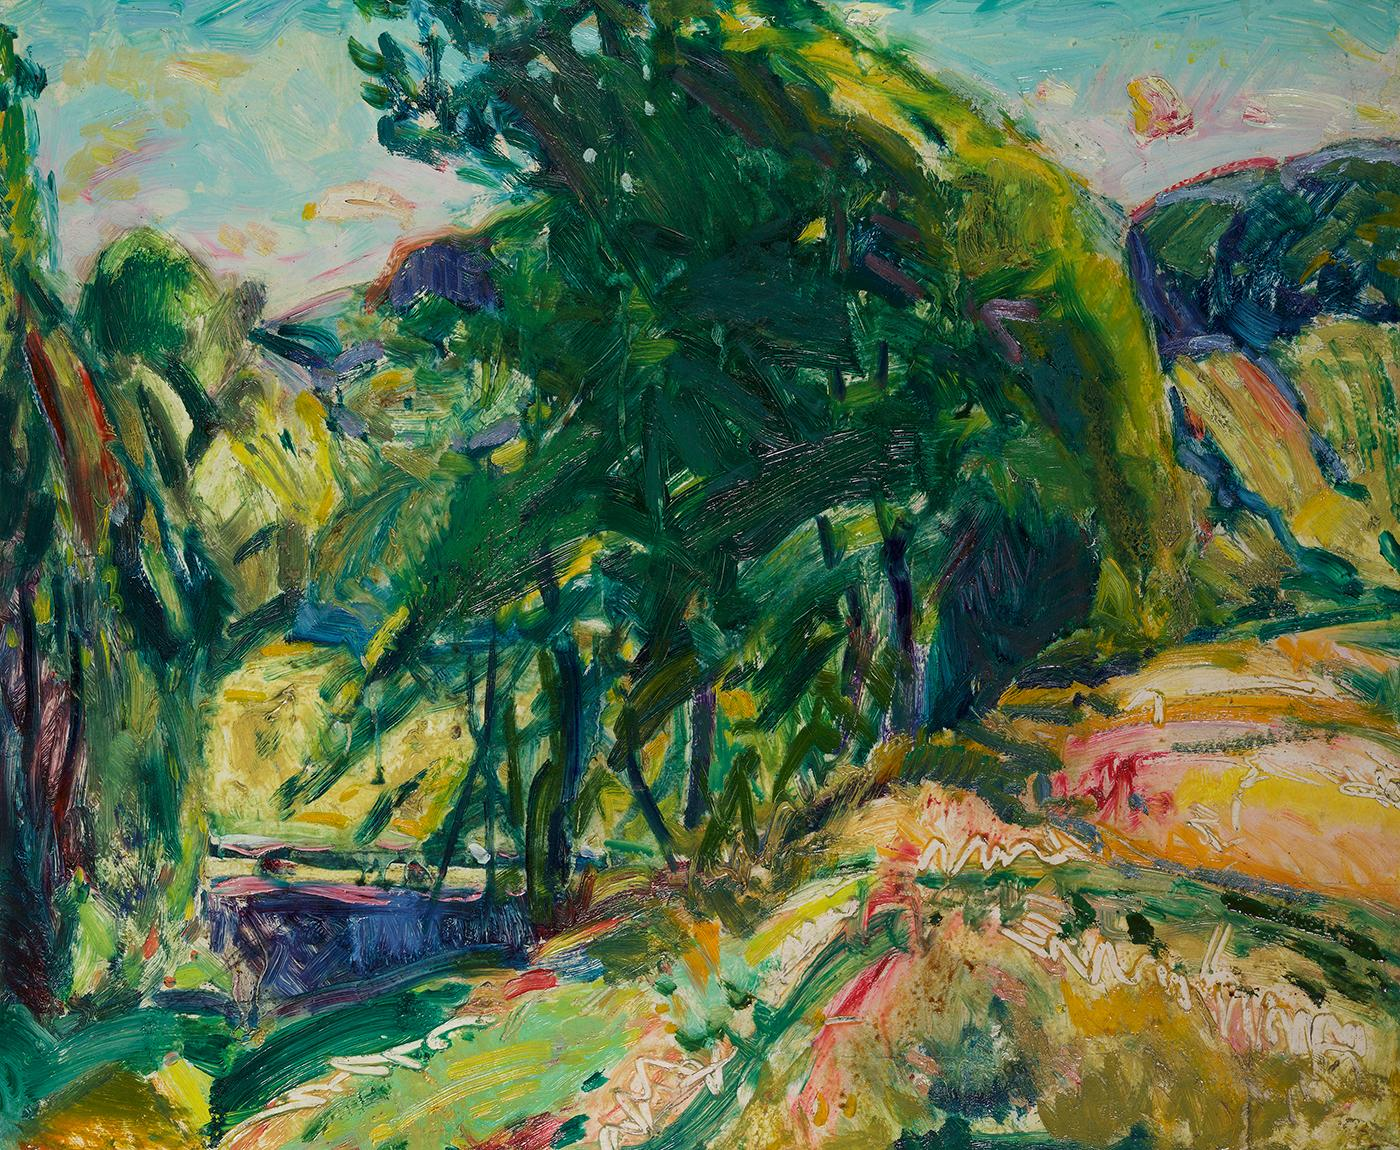 Landscape with Green Tree